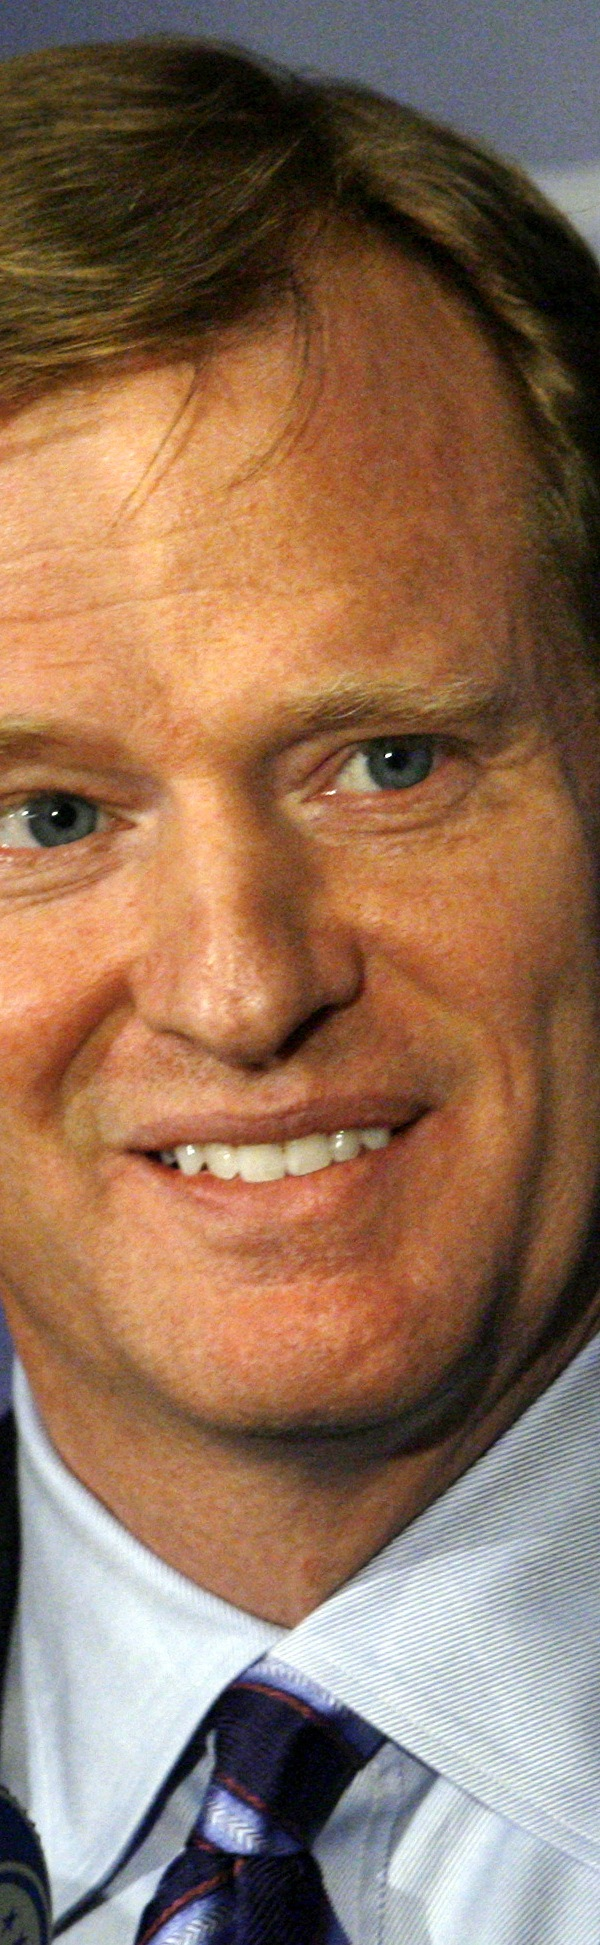 TDIF: Roger Goodell named Commissioner